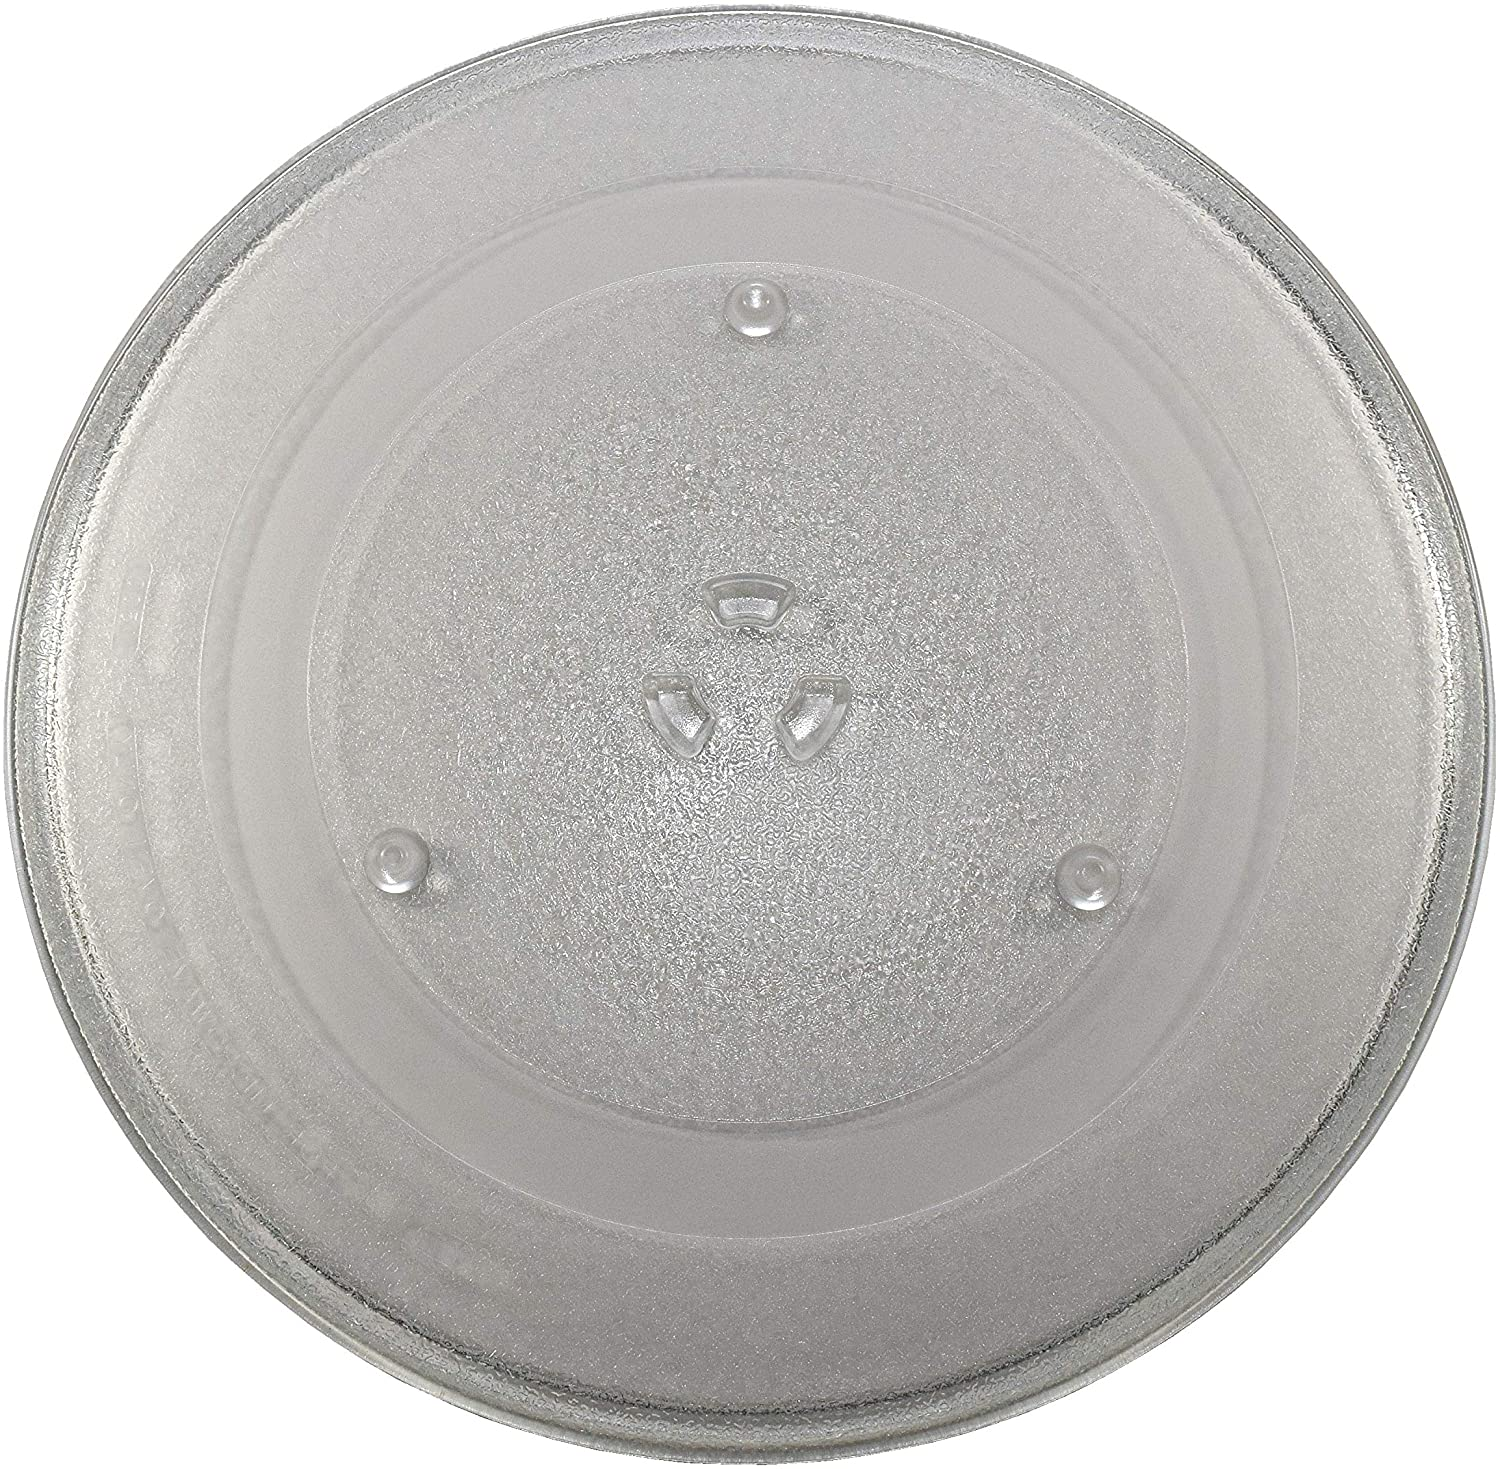 hqrp 14 1 8 inch glass turntable tray fits whirlpool w10531726 kmhs120ebl0 wmh53520cb0 wmh73521cb0 wmh76719cb0 ywmh78019hb0 ywmh76719cb0 ywmh53520cb0